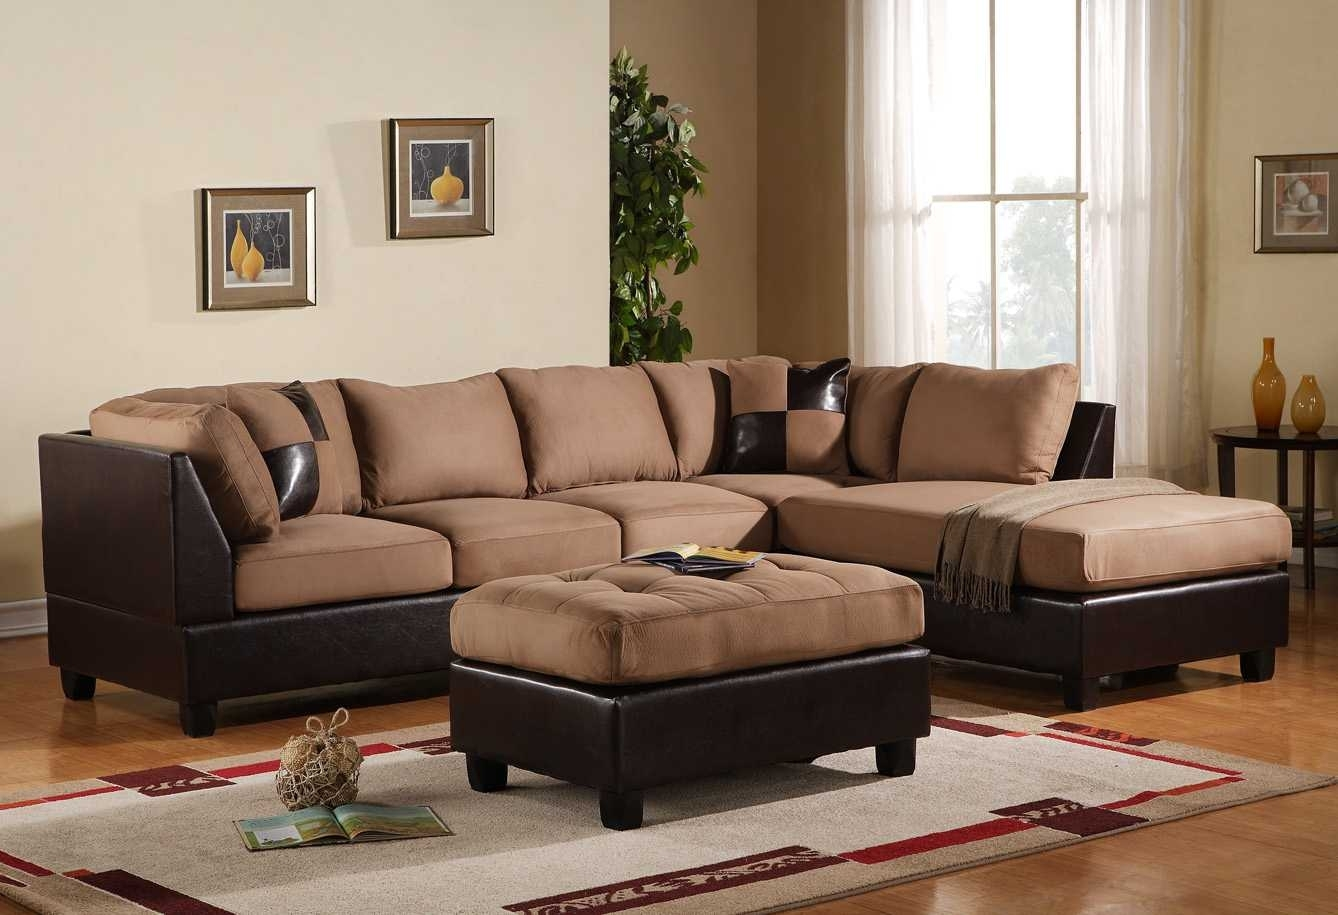 10 Best Rooms to Go Sectional Sofas  Sofa Ideas